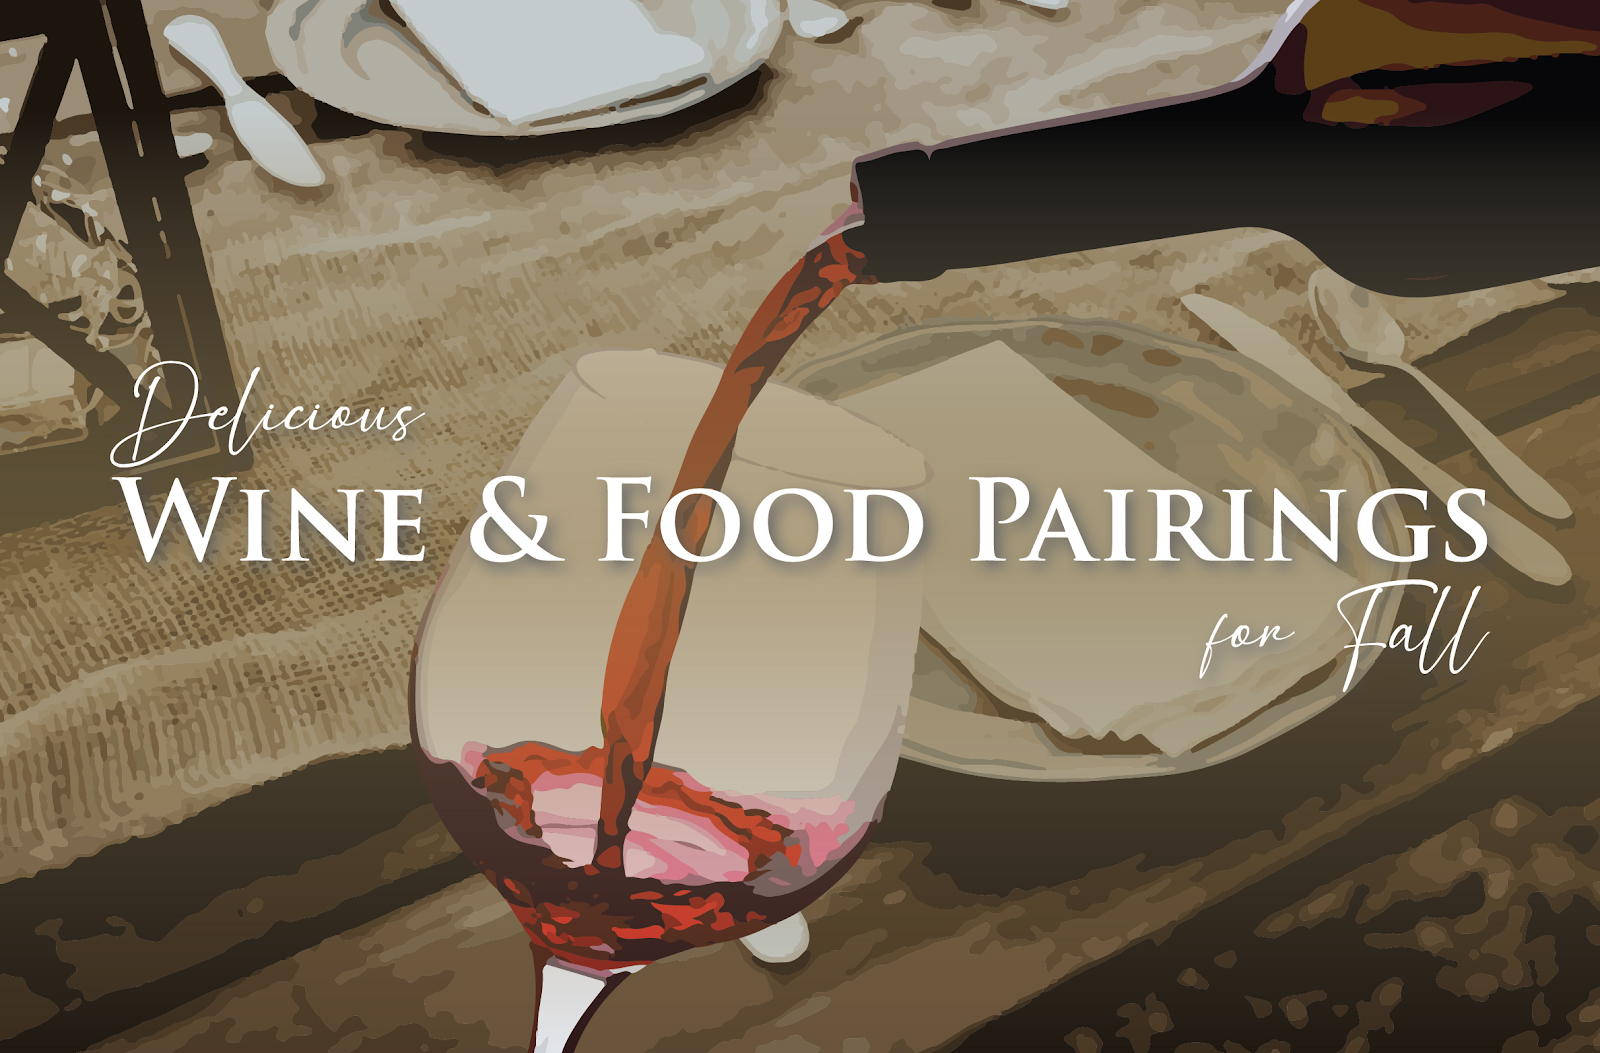 Delicious Wine & Food Pairings for Fall